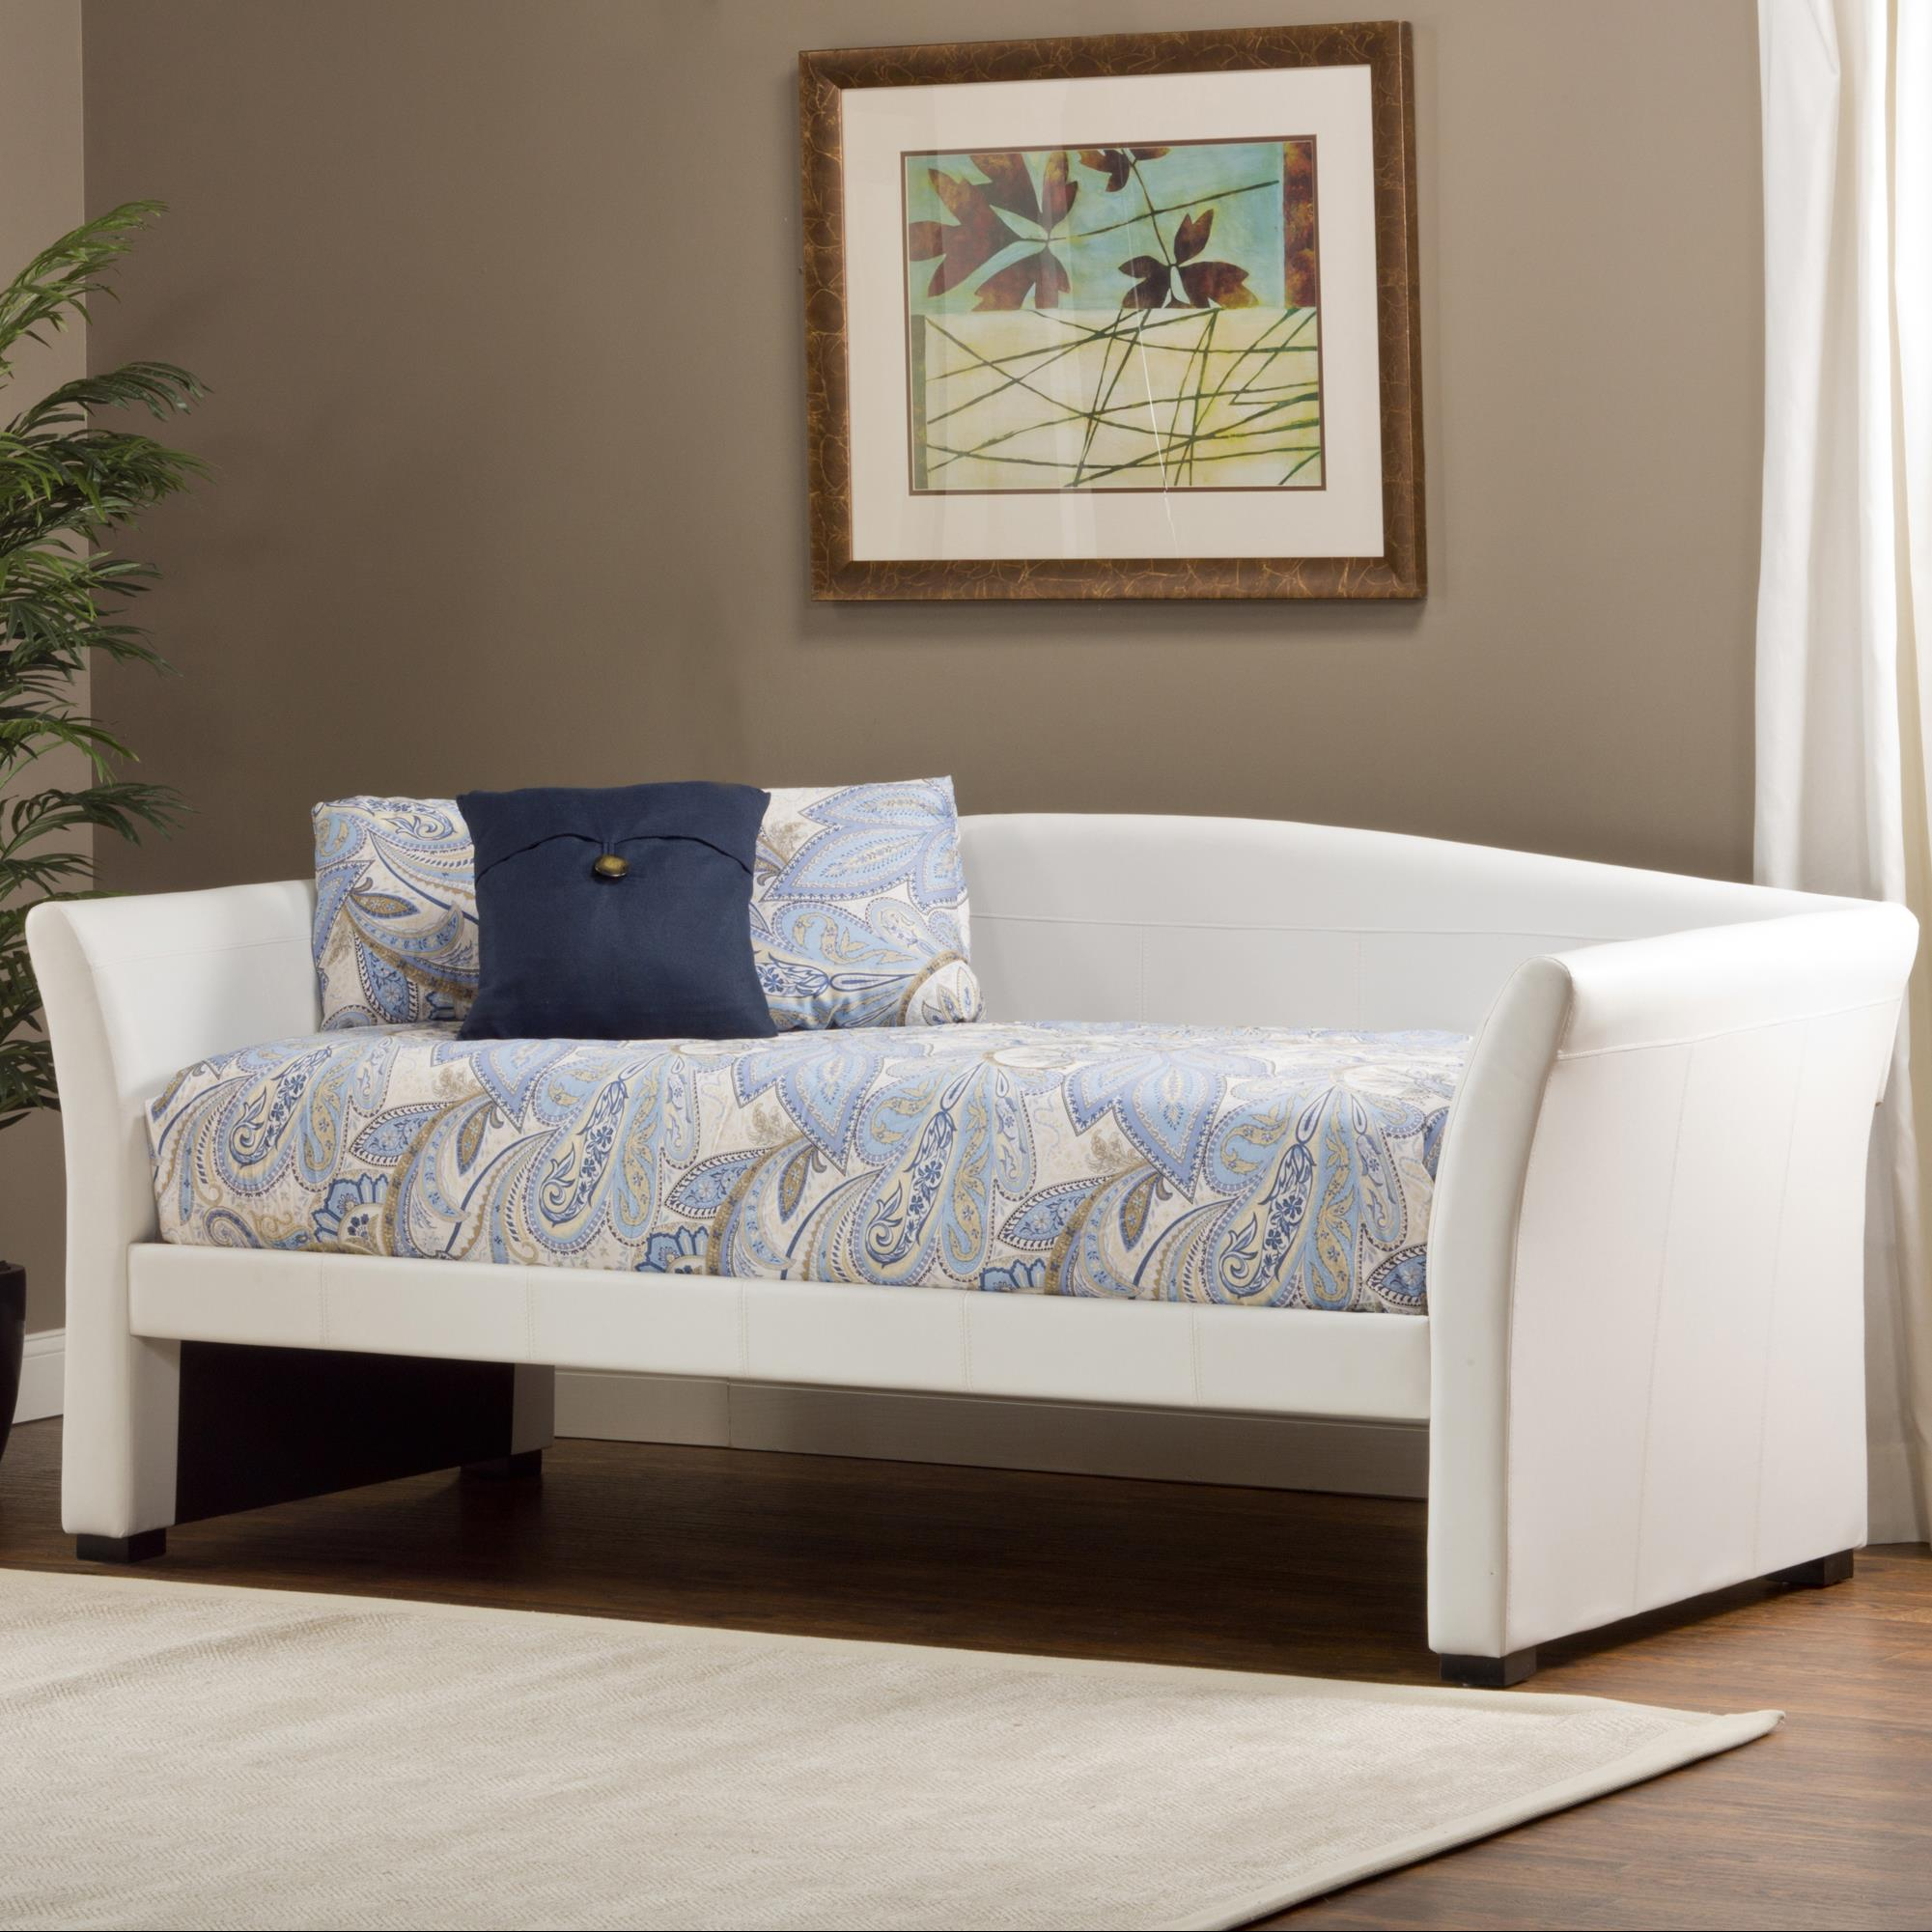 Hillsdale Daybeds Daybed - Item Number: 1212DB